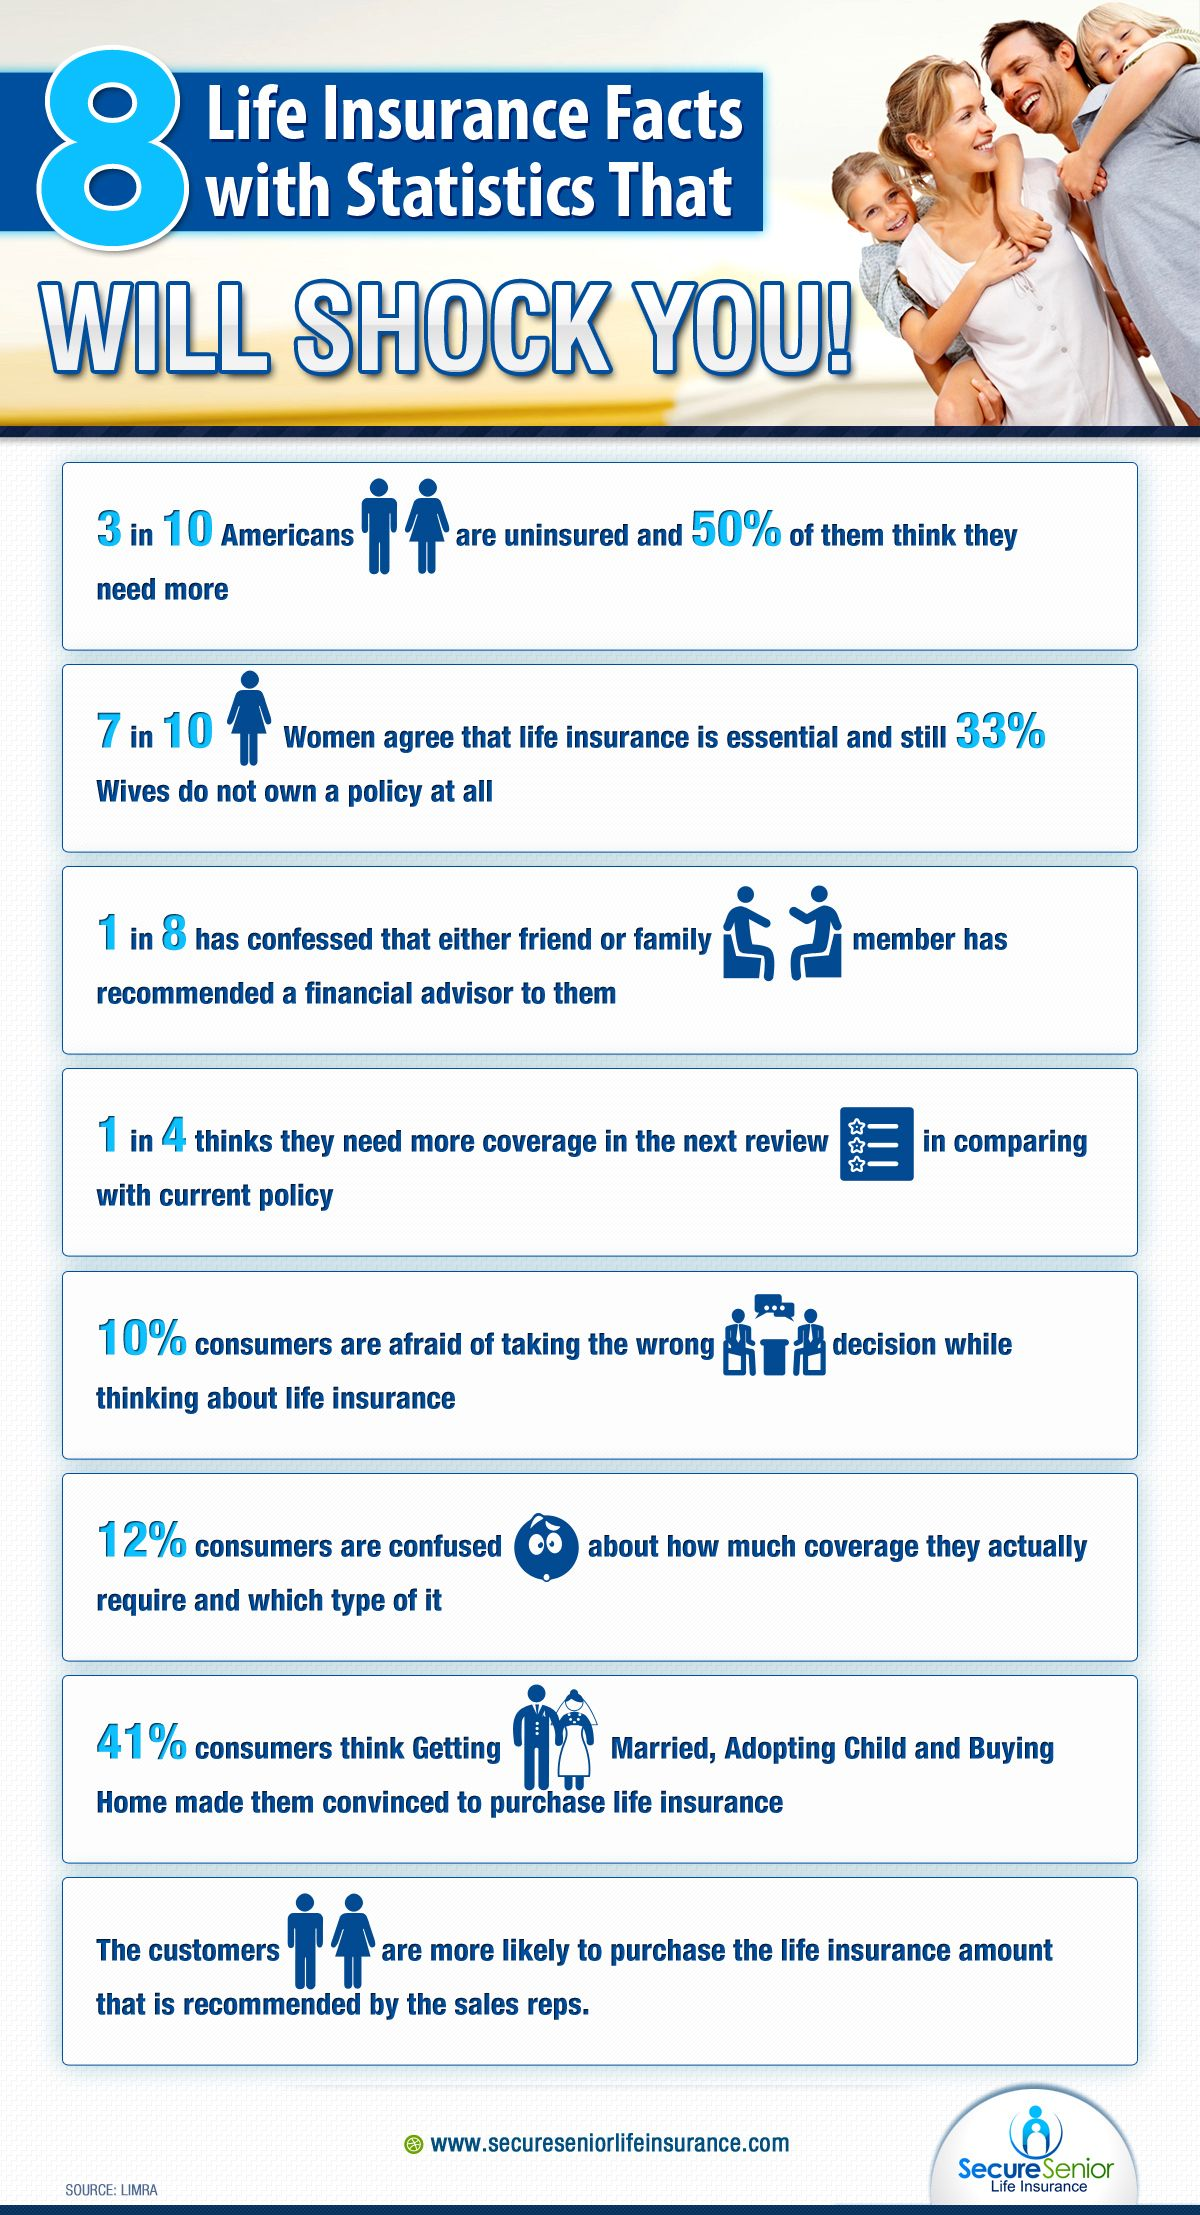 Life Insurance Stats And Facts Is Shown In An Infographic You